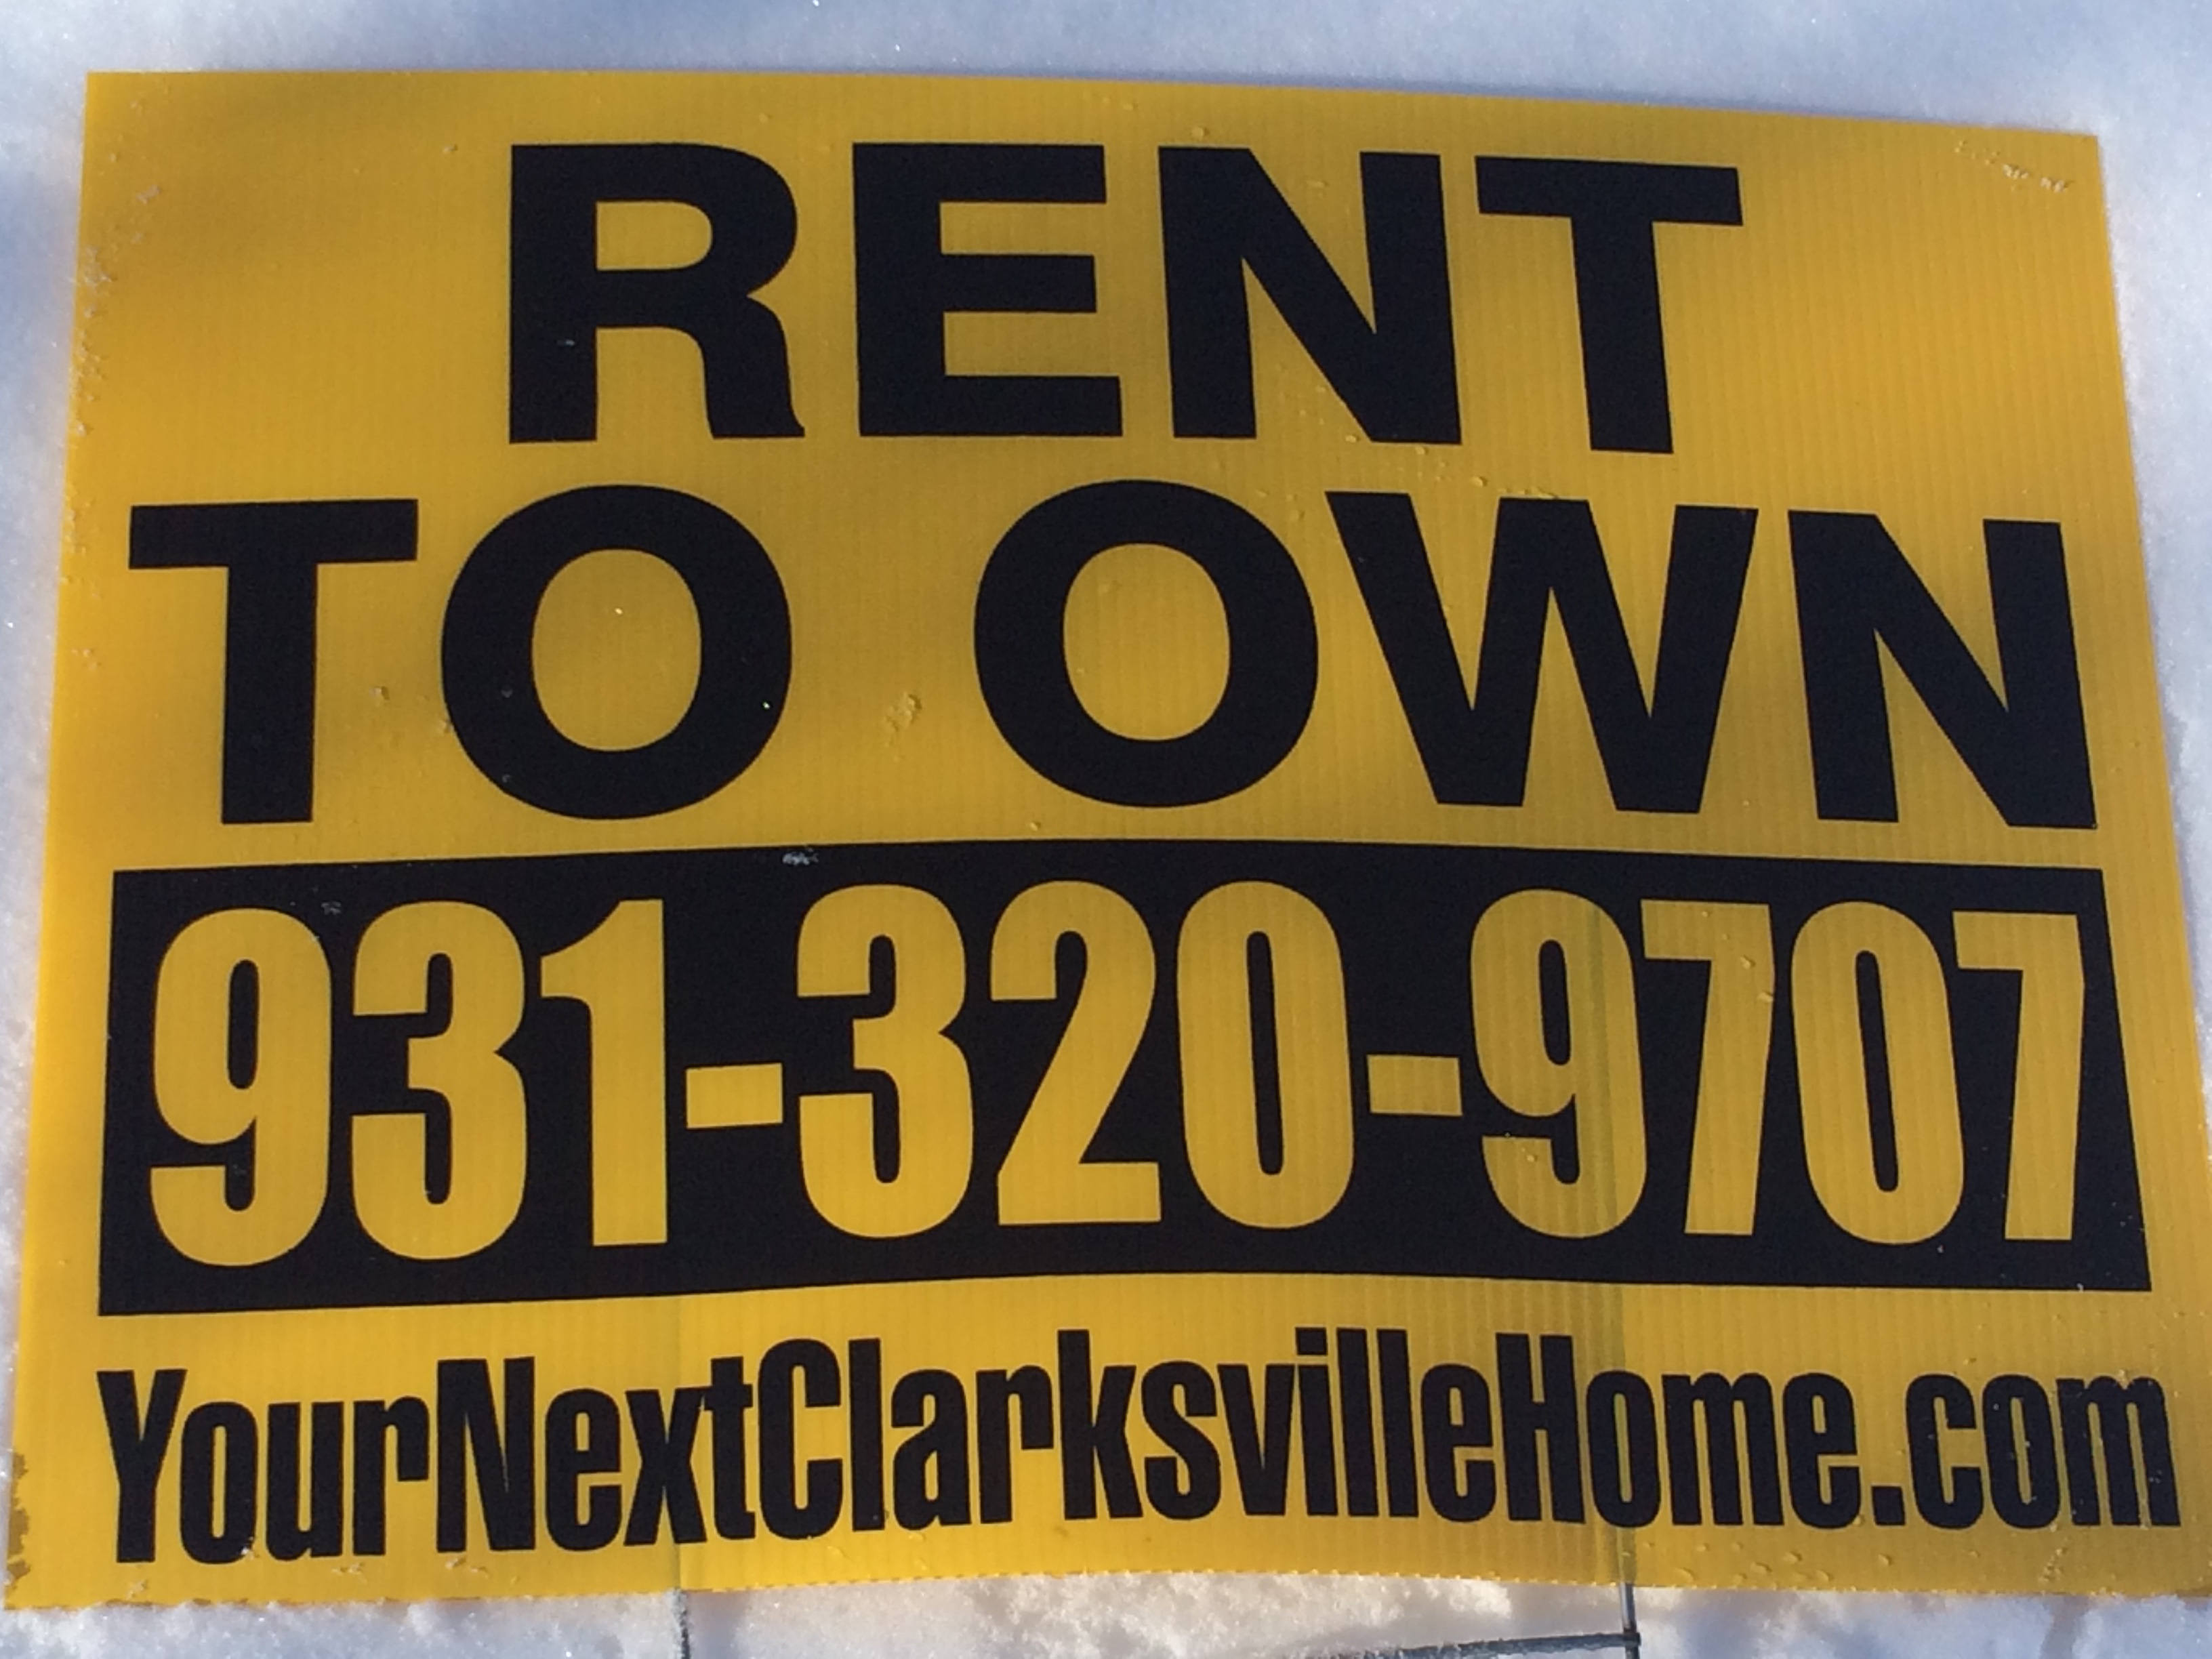 Confused About Rent To Own In Clarksville Tn Call Us 931 320 9707